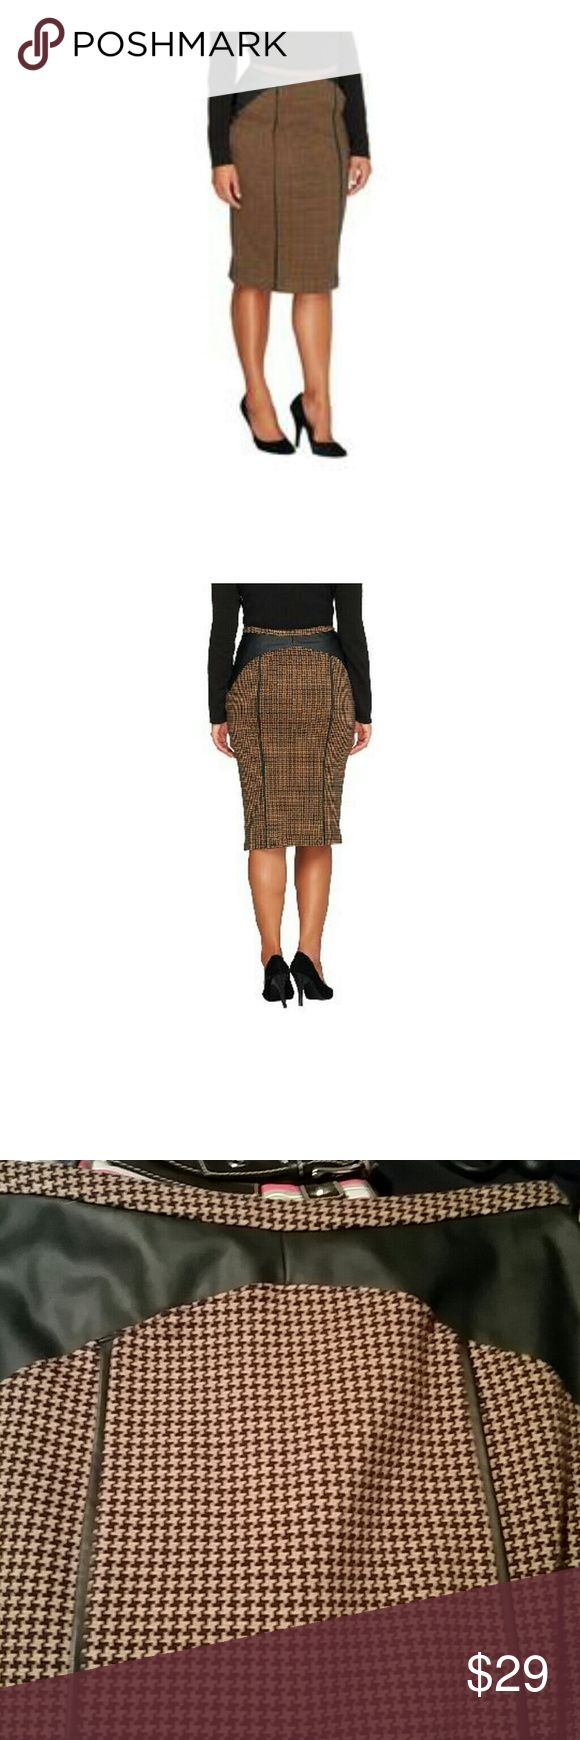 EDGE by Jen Rade size 6 Excellent condition skirt tan and black size 6 body is 90% cotton 9% polyester 1% spandex inserted panel coating is 100% polyurethane backing is 100% polyester What a stunning skirt EDGE Skirts